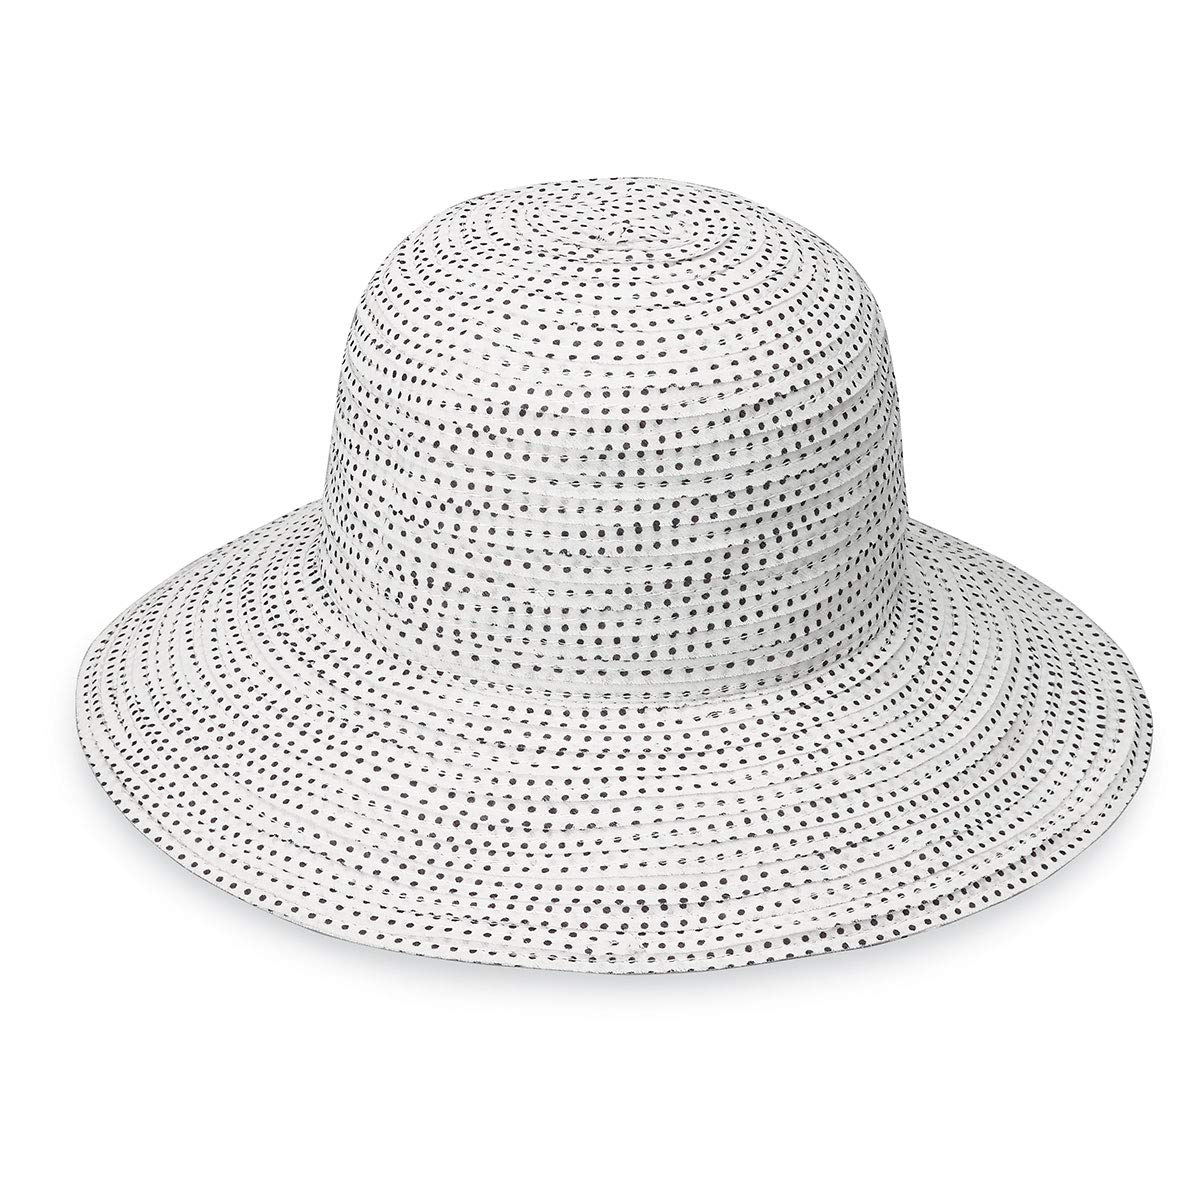 81c7a7efad3 Wallaroo Hat Company Women s Petite Scrunchie Sun Hat – White Black Dots –  UPF 50+